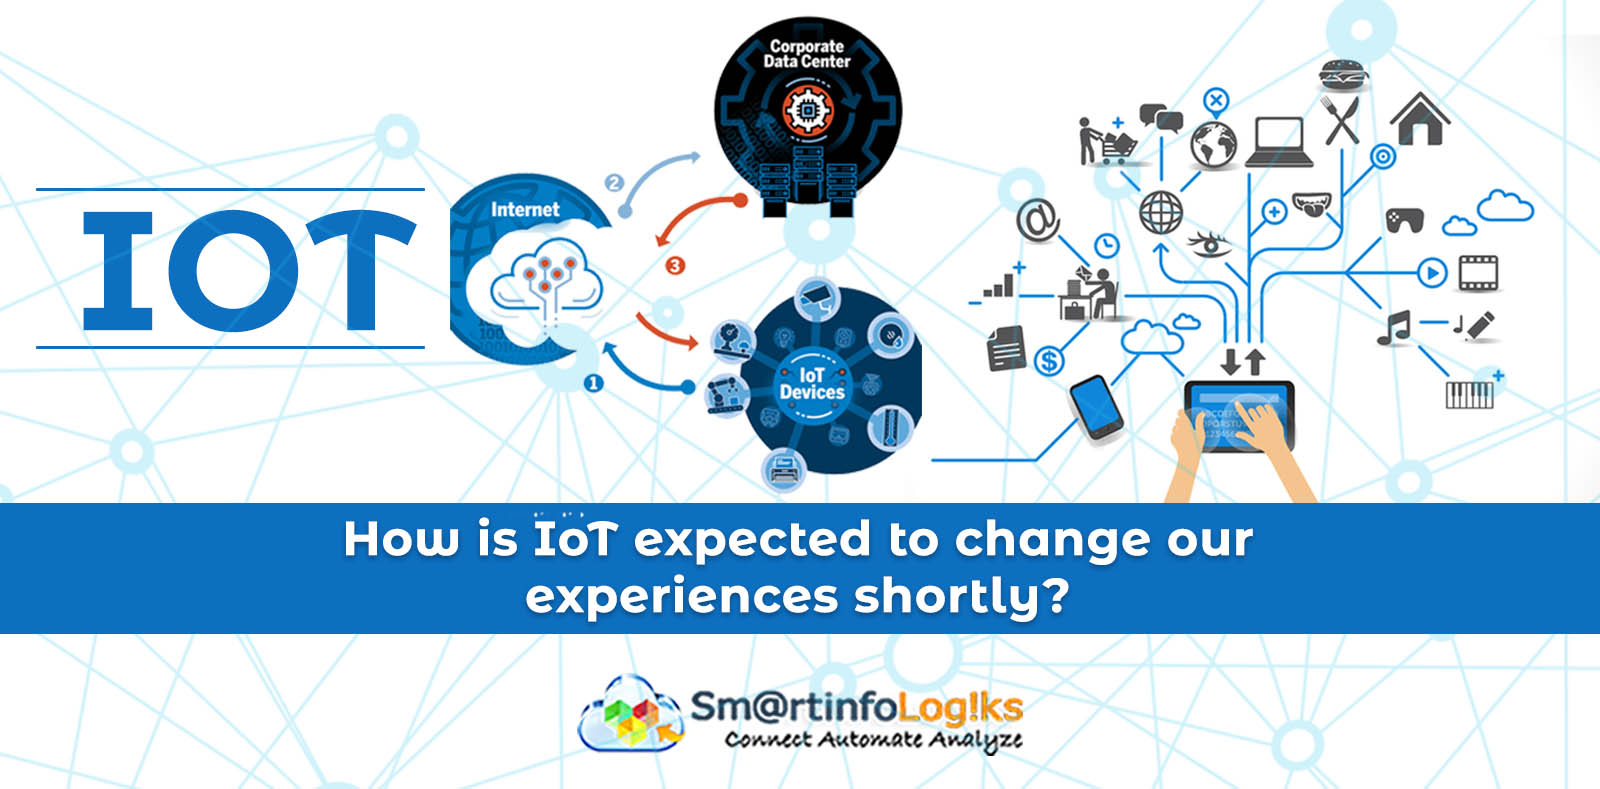 How is IoT expected to change our experiences shortly?